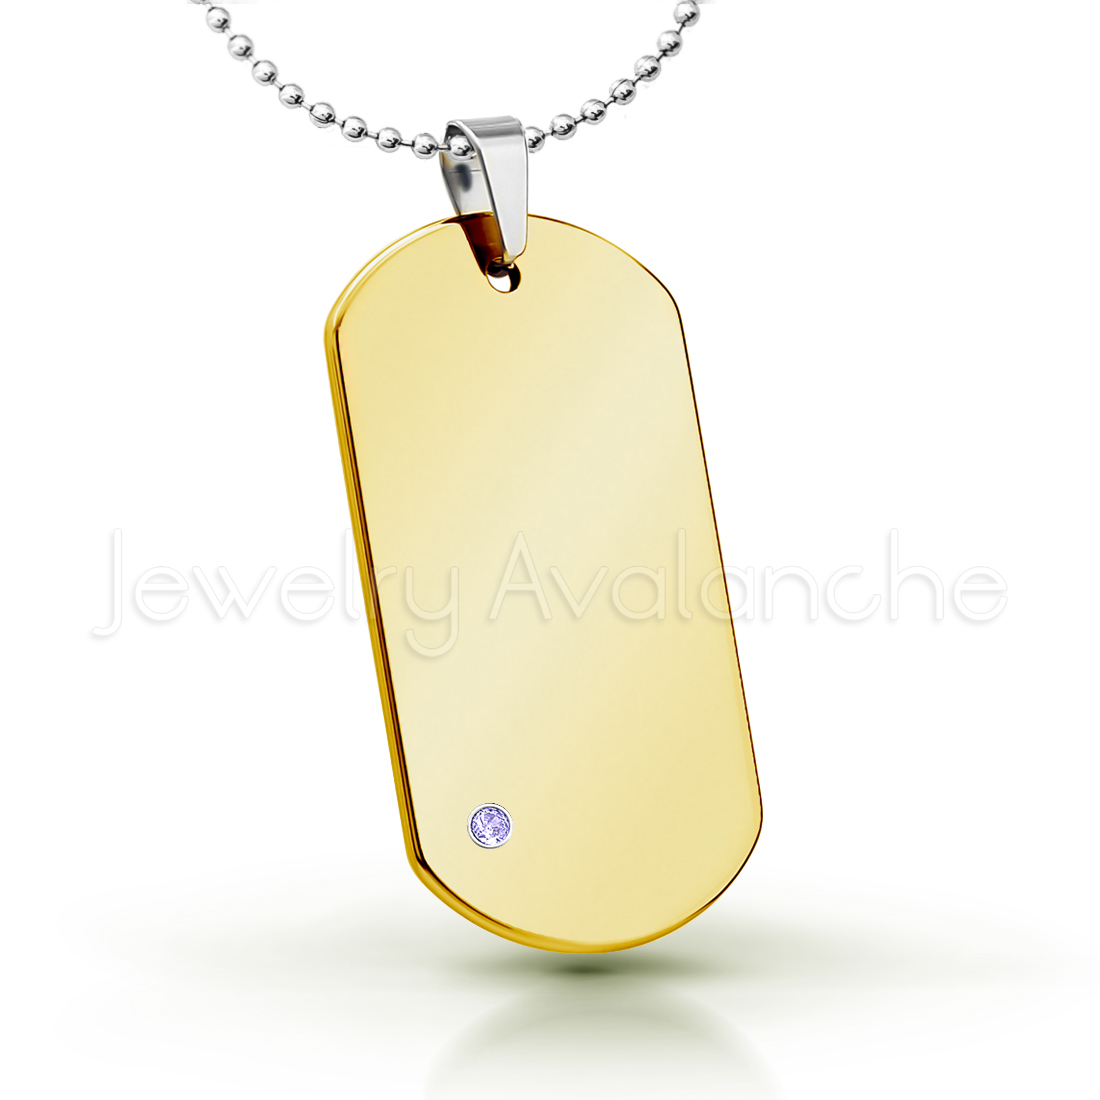 white ewa blue main johnlewis buyewa aquamarine pendant aqua com gold at rsp online necklace marine john lewis pdp